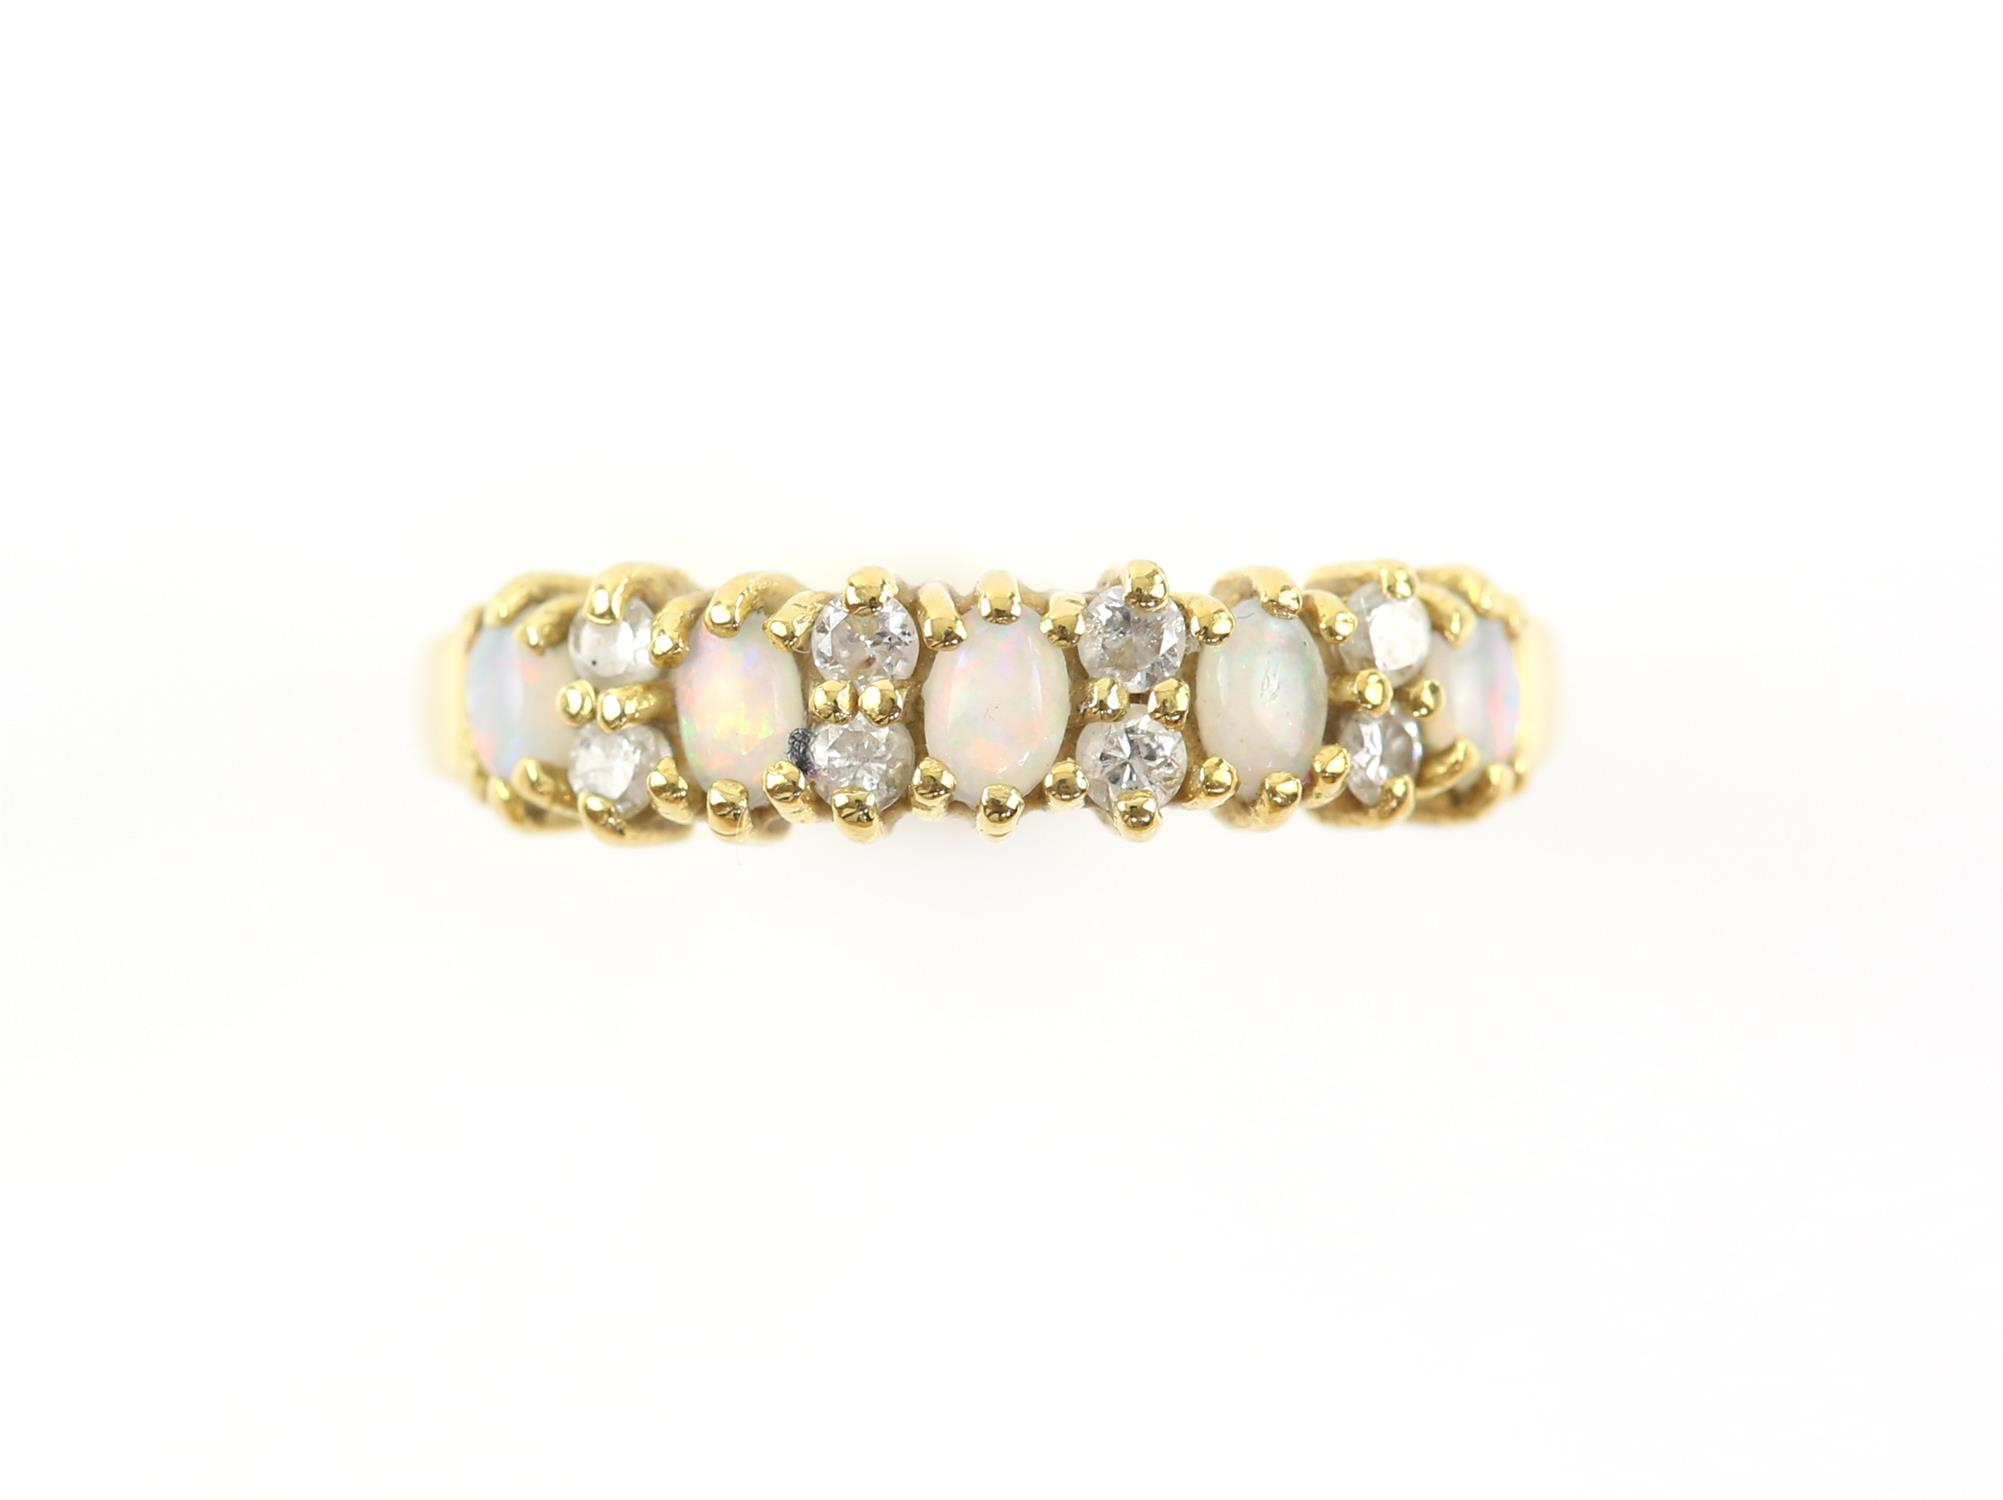 Opal and diamond half hoop ring, set with five oval cabochon cut opals, spaced with round brilliant